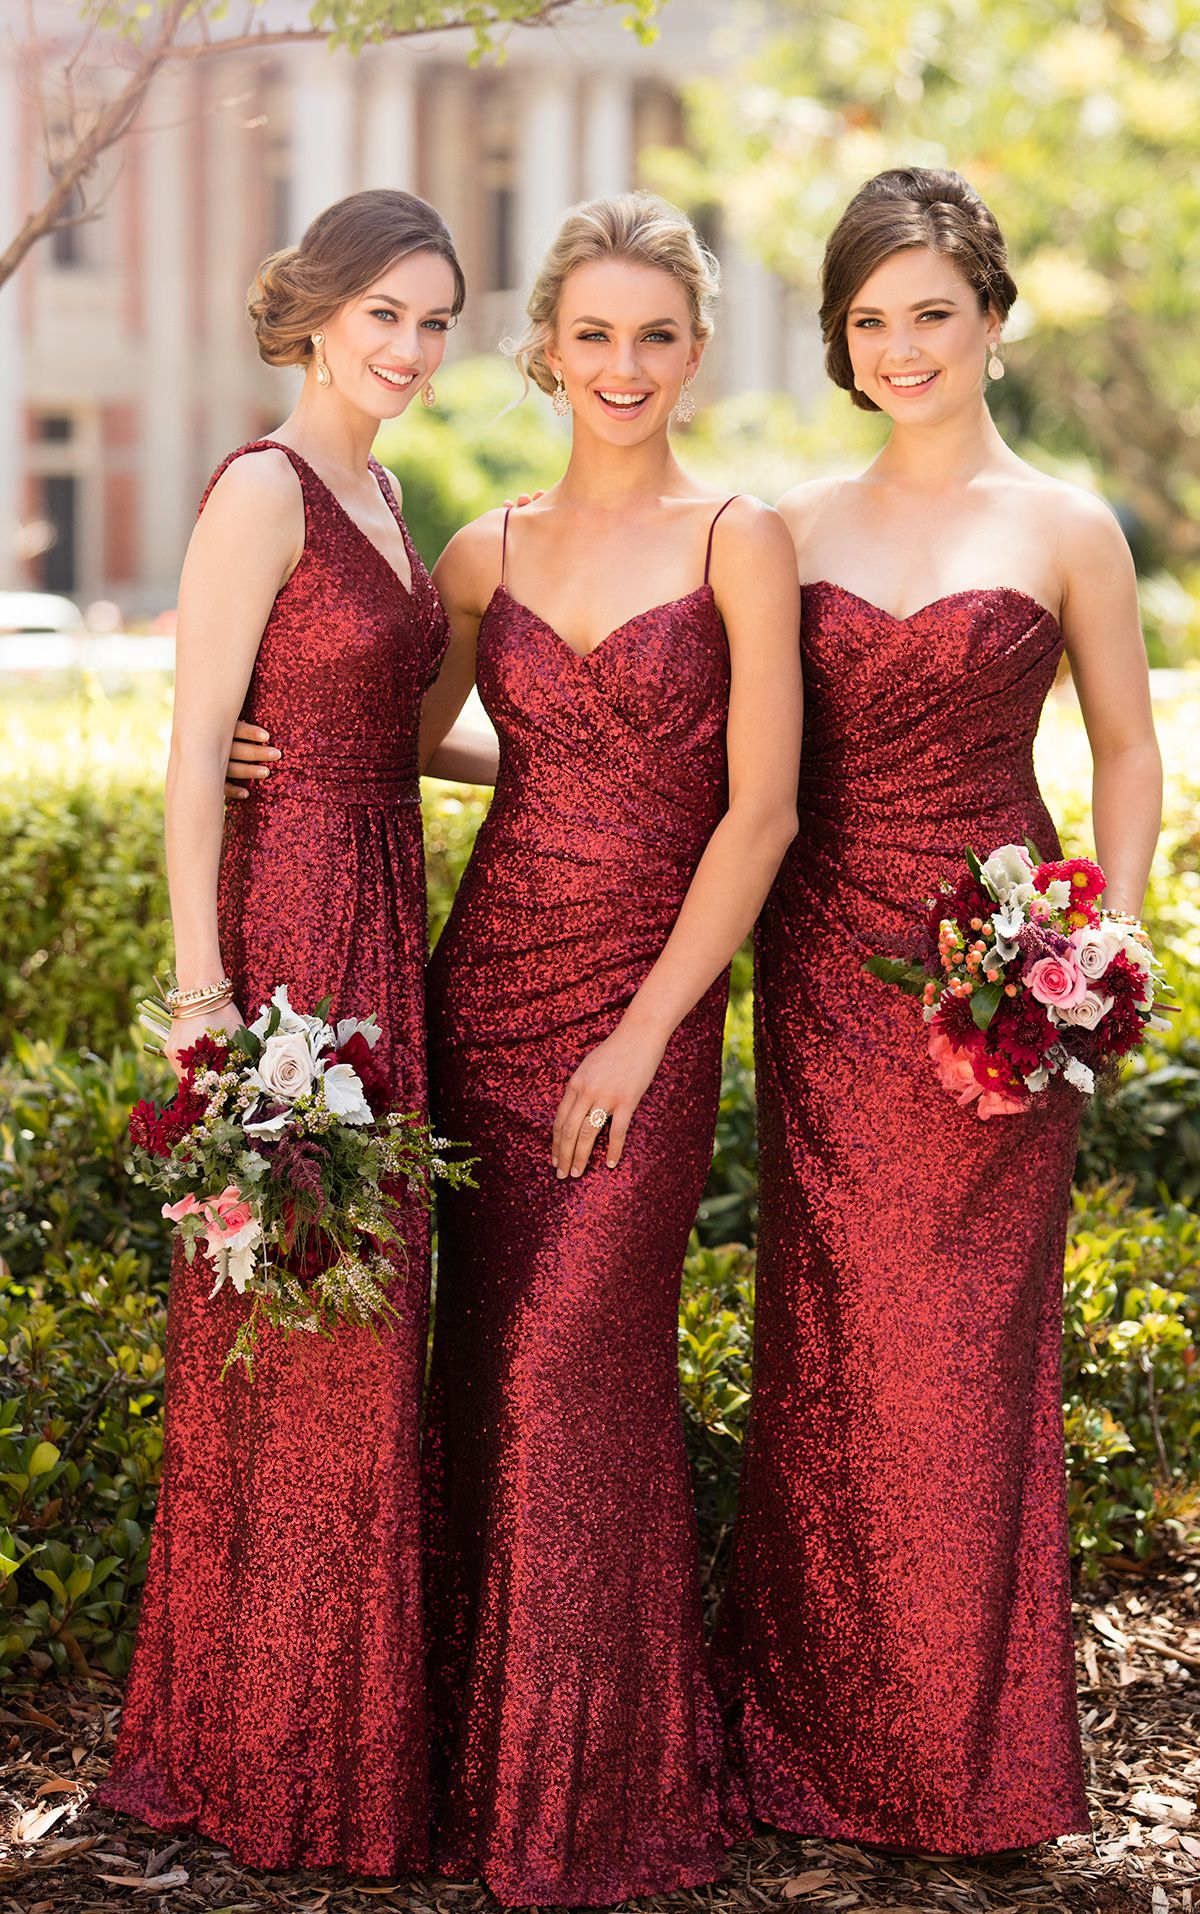 Bridesmaid dresses in bridesmaid pinterest bridesmaid